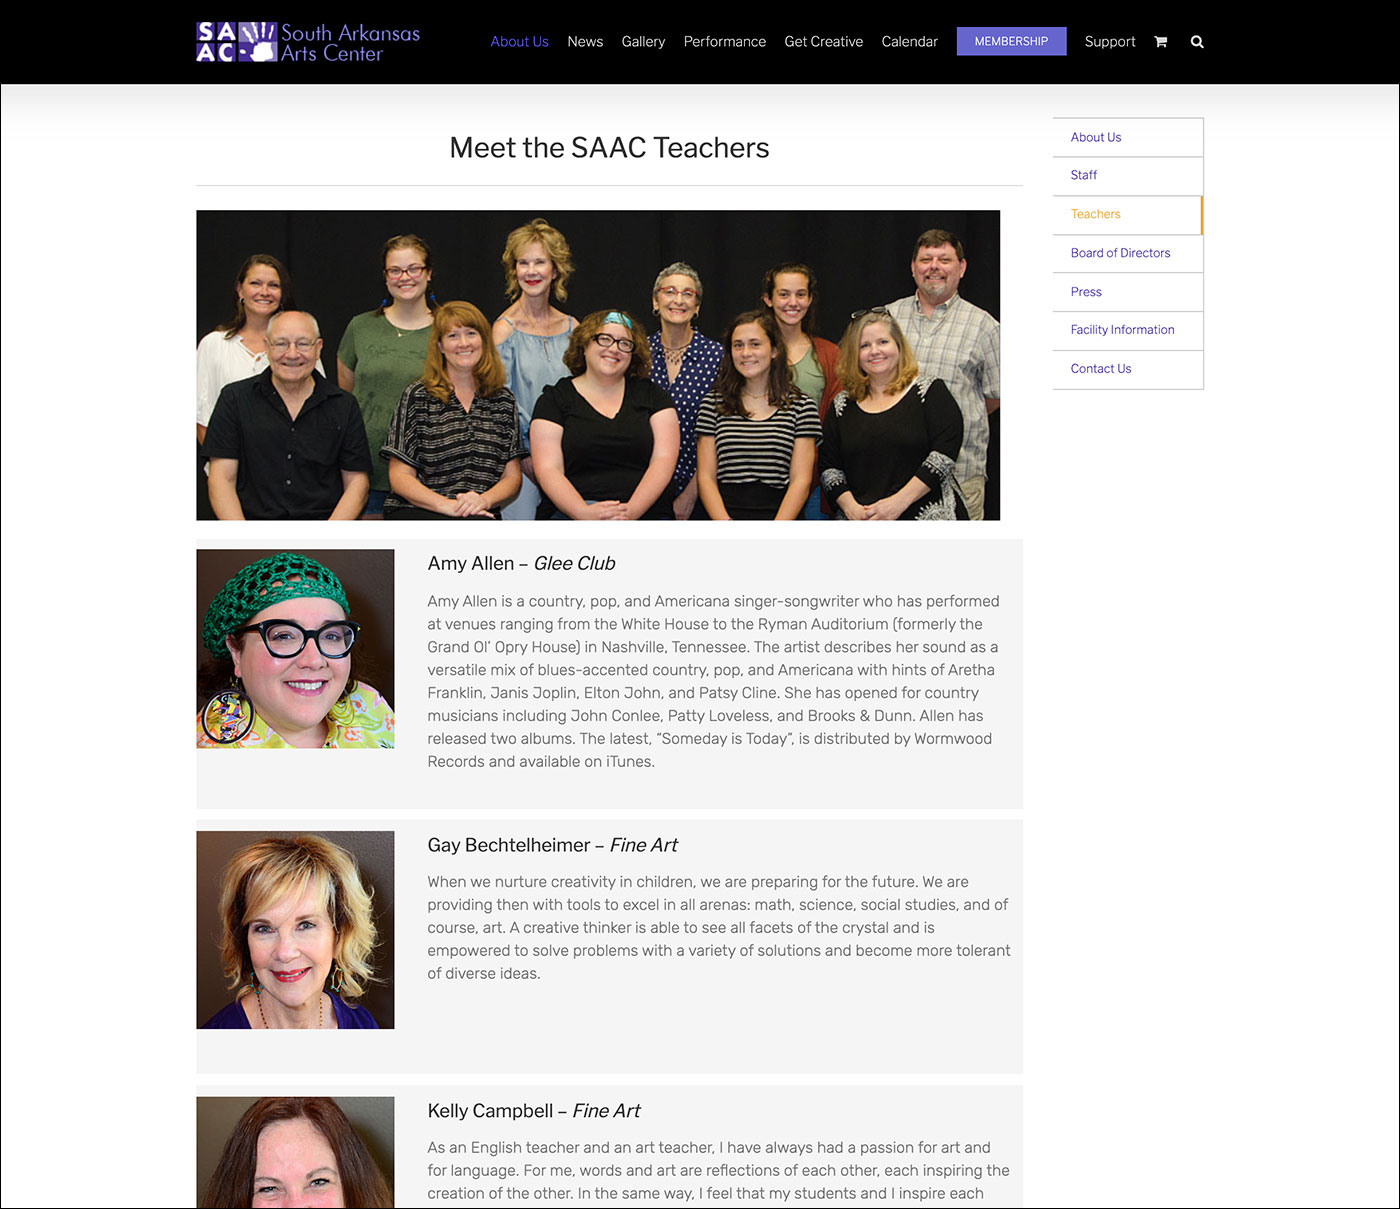 South Arkansas Arts Center - Teachers